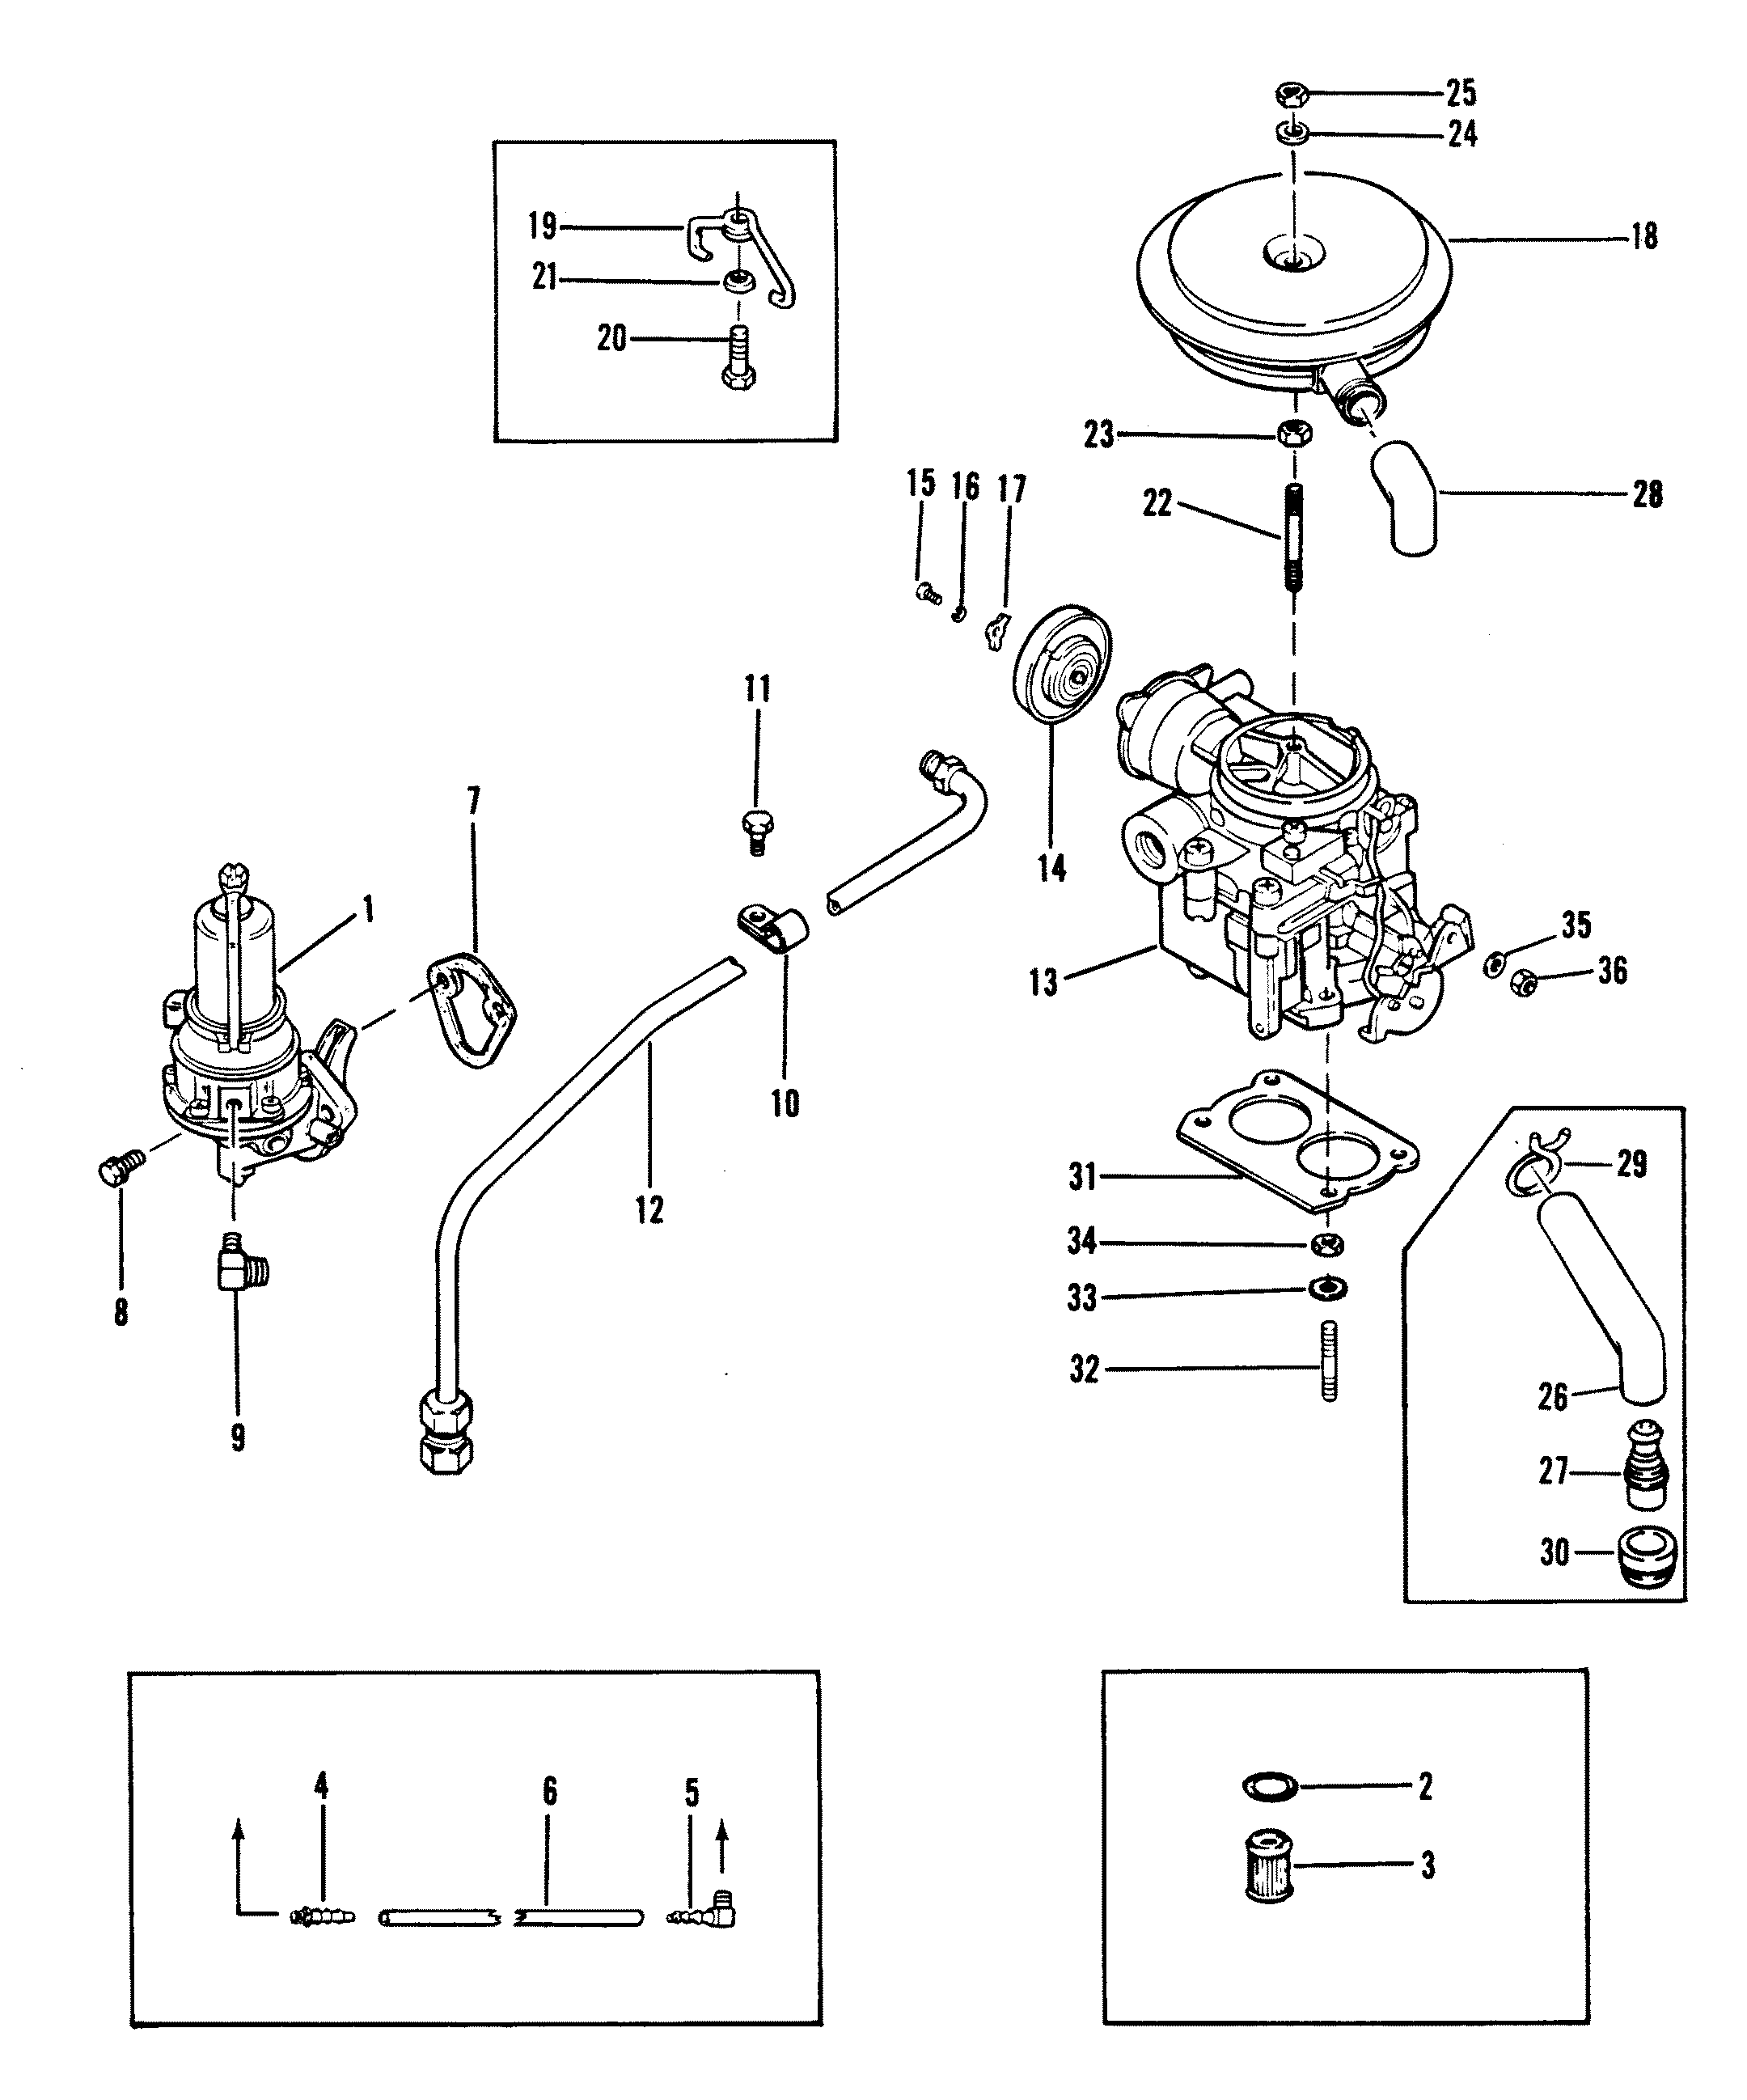 gm iron duke engine diagram  diagram  auto wiring diagram